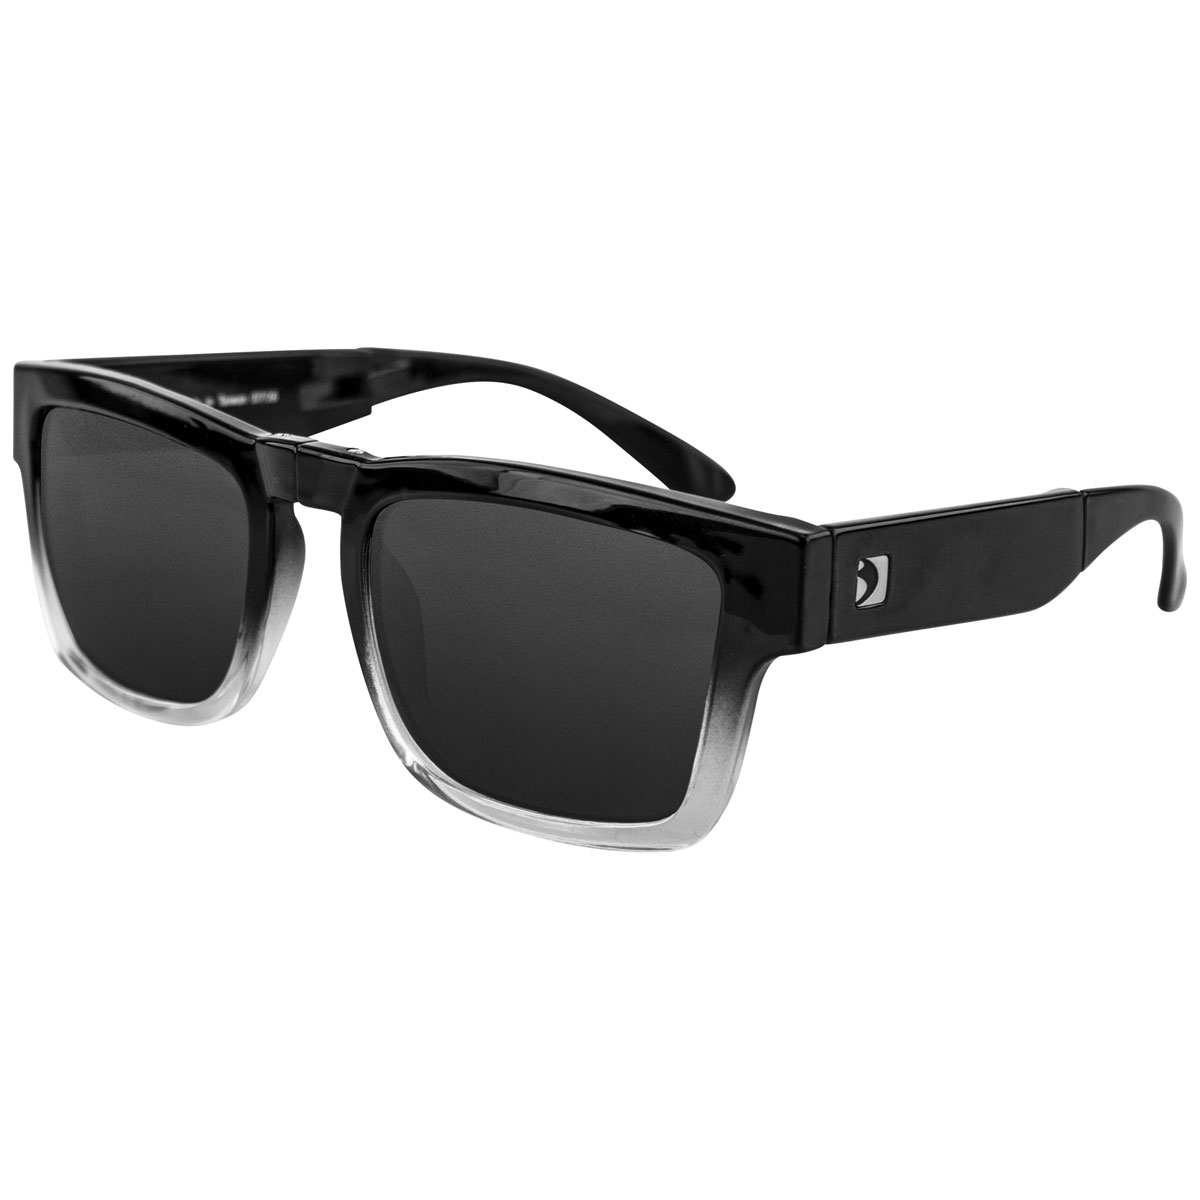 Bobster Brix Black Gradient Sunglasses with Smoke Lens